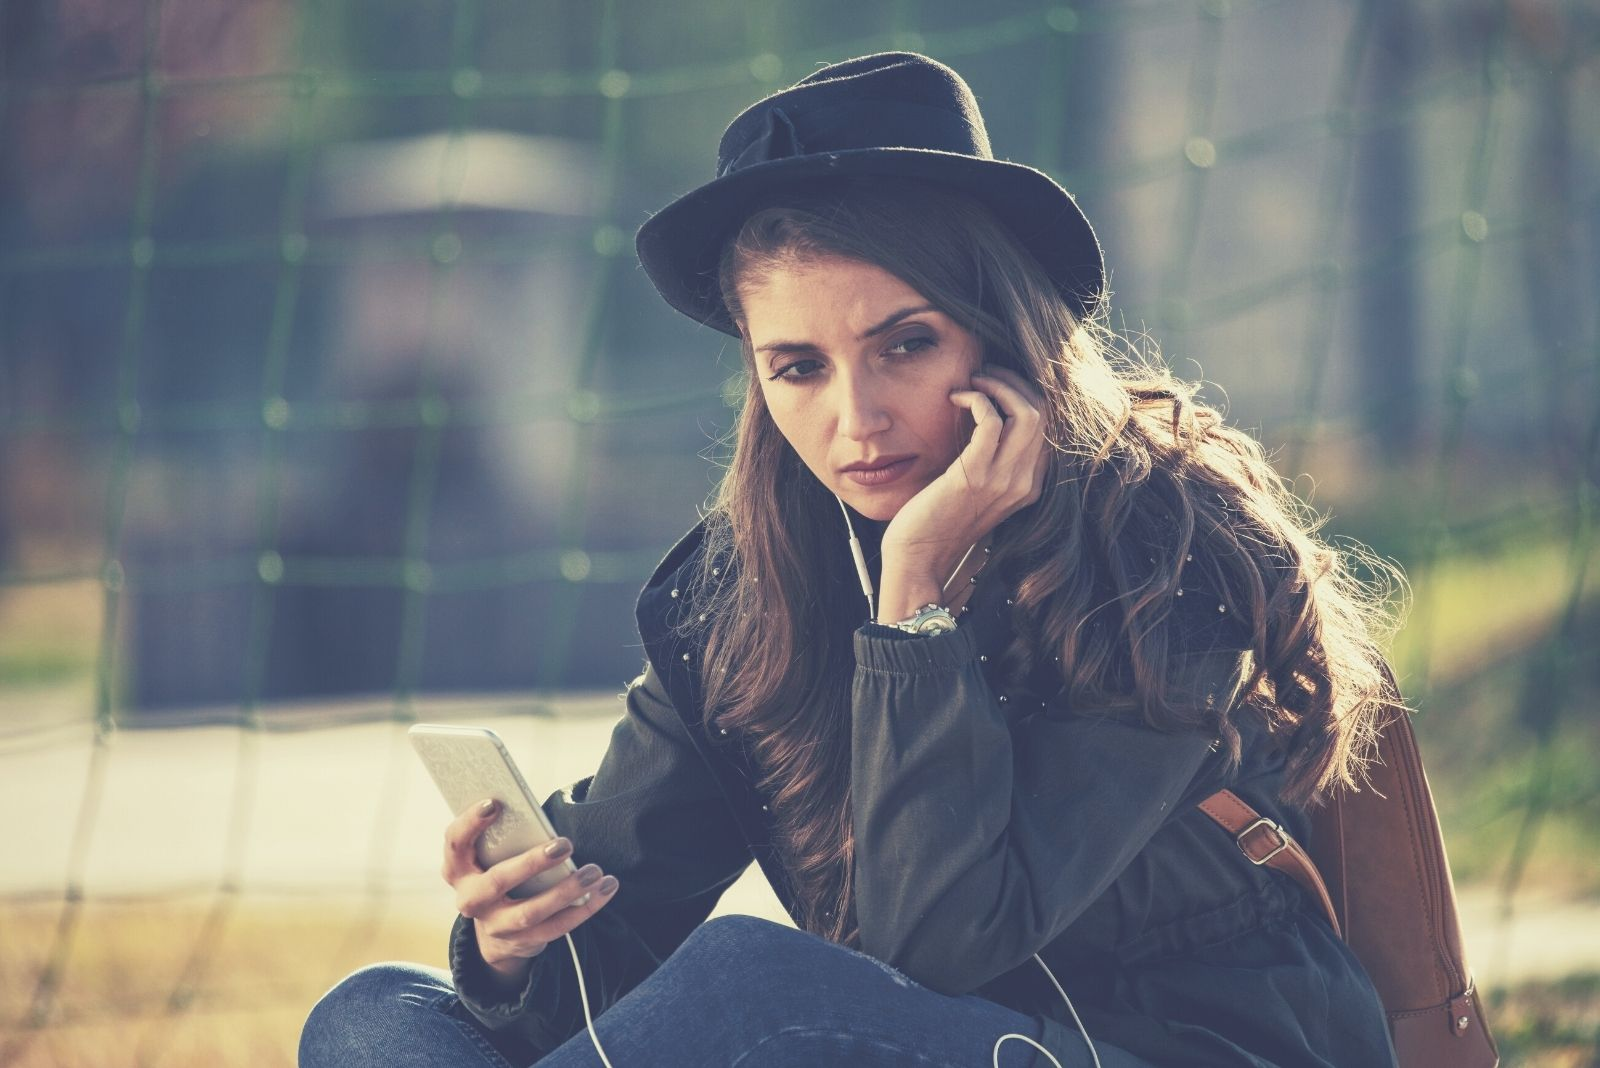 young sad woman with a phone sitting outdoors with a hat